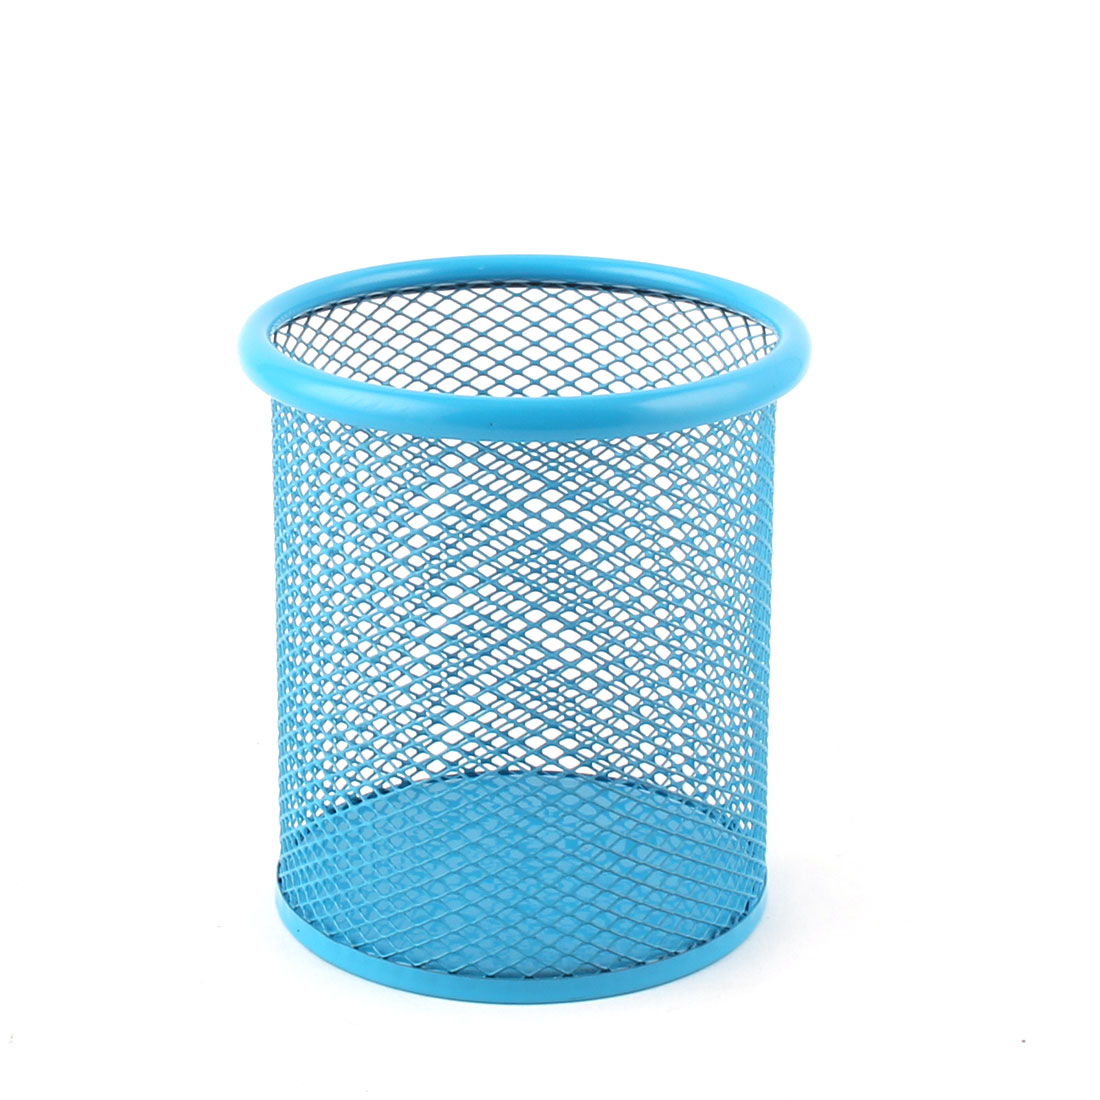 Home Office Metal Meshy Desktop Decor Stationery Pencil Ruler Pen Holder Container Blue